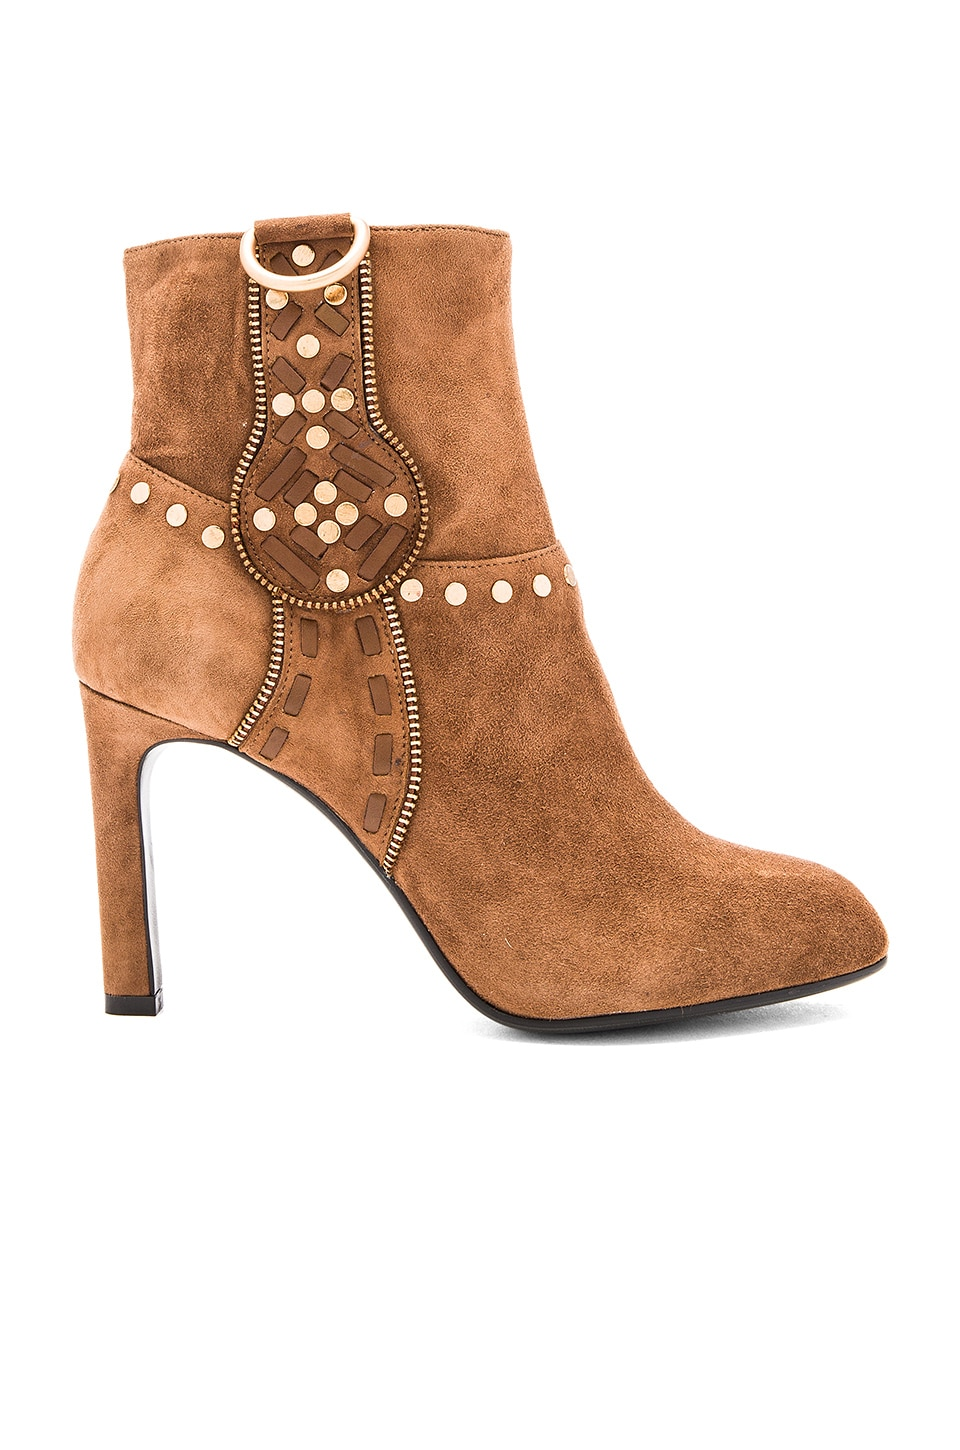 Lola Cruz Aniak Bootie in Tan